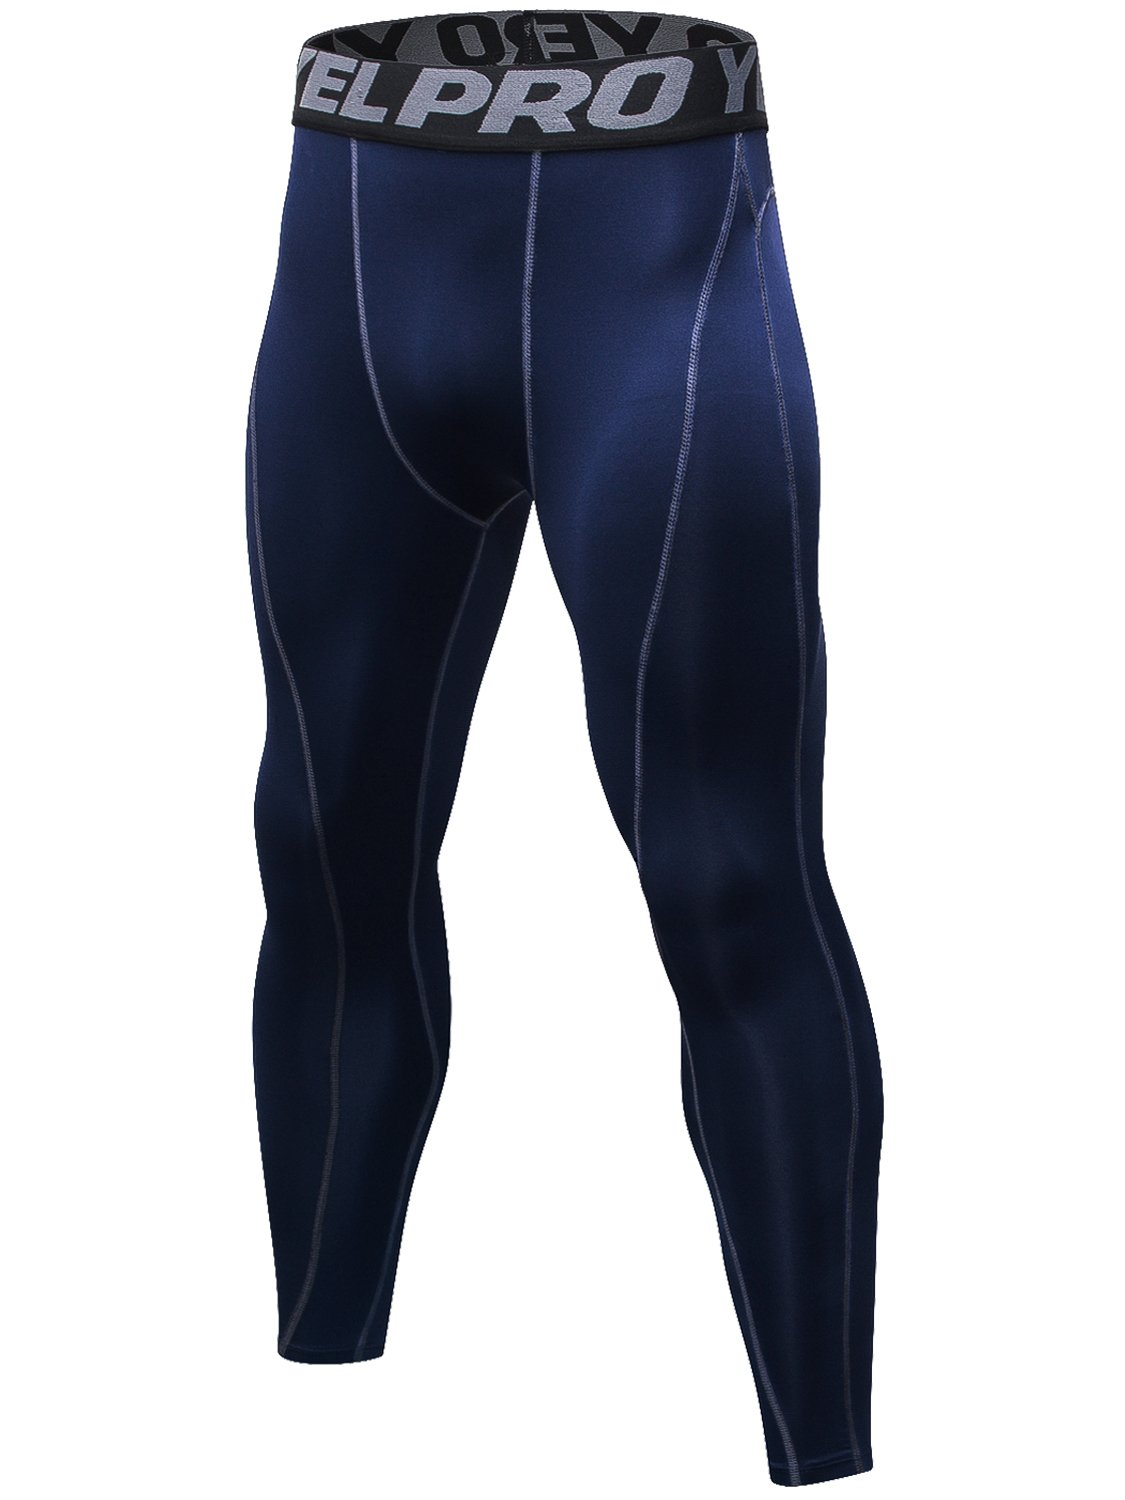 1 Pack-1060 Navy blueee X-Large Lavento Men's Compression Pants Baselayer Cool Dry Running Ankle Leggings Active Tights